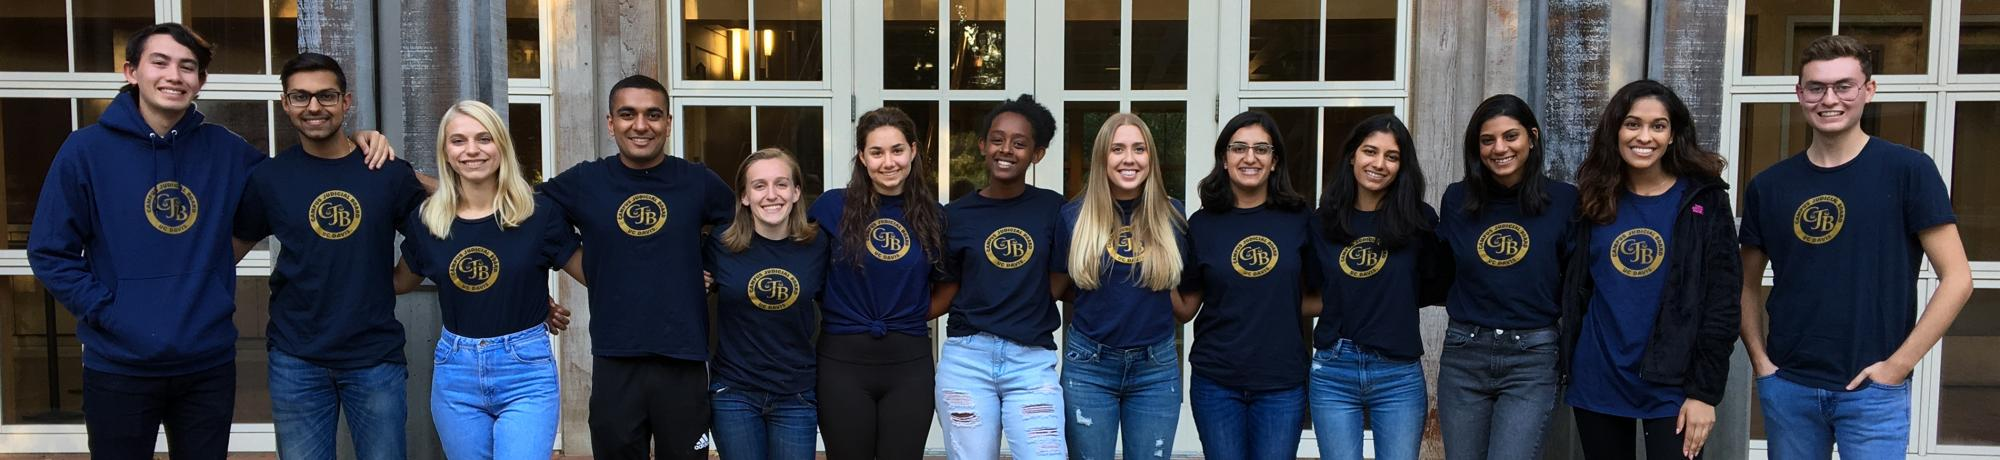 2018-2019 members of the Campus Judicial Board